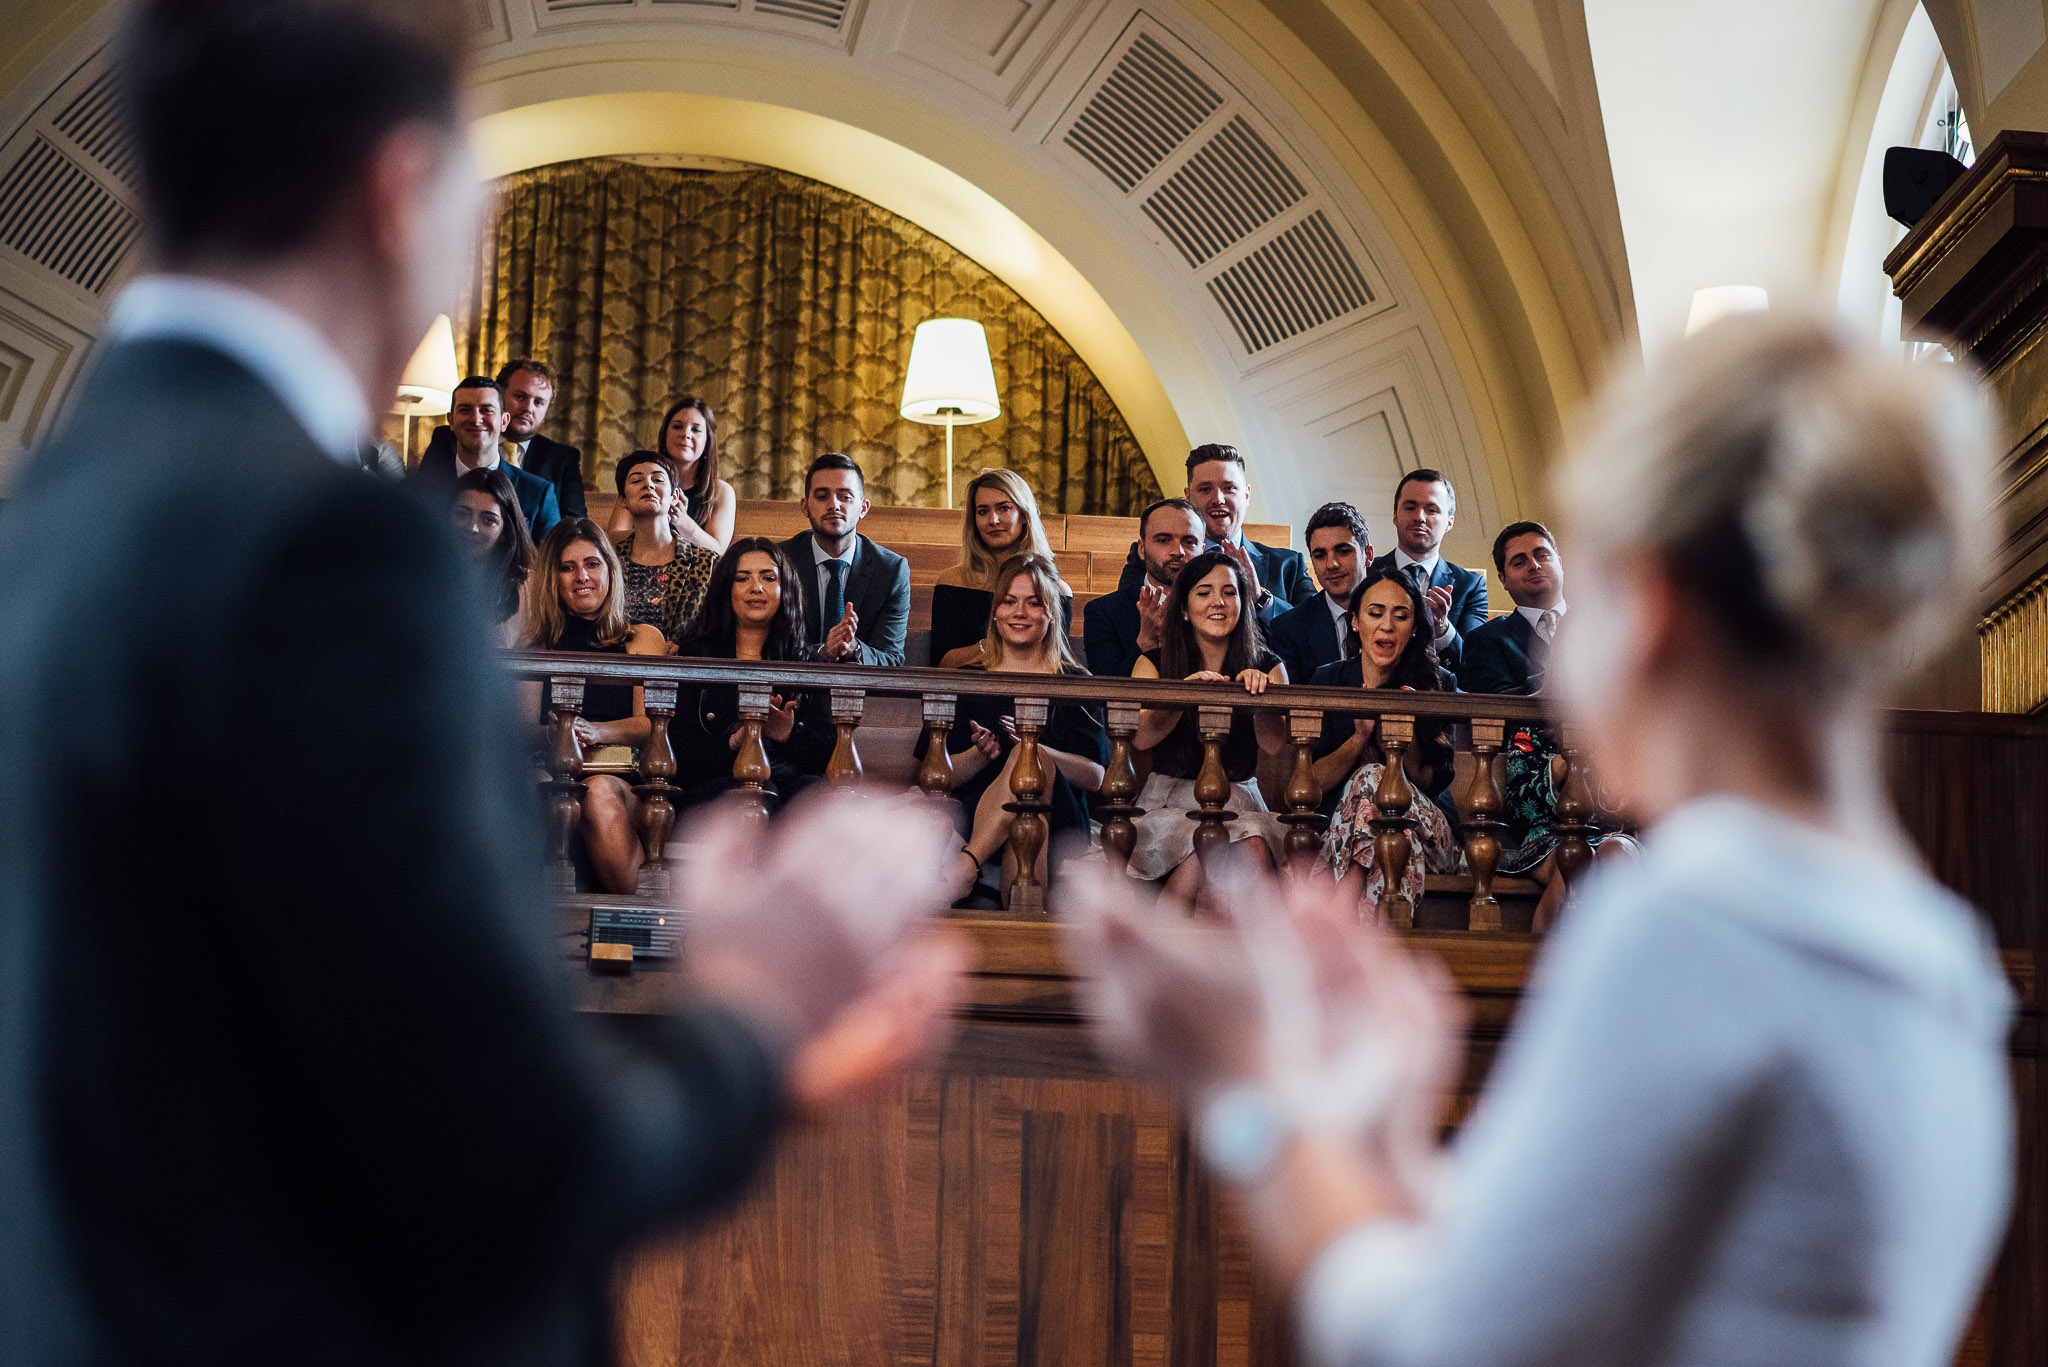 Congregation in stoke newington town hall wedding by creative and alternative london wedding photographer the shannons photography